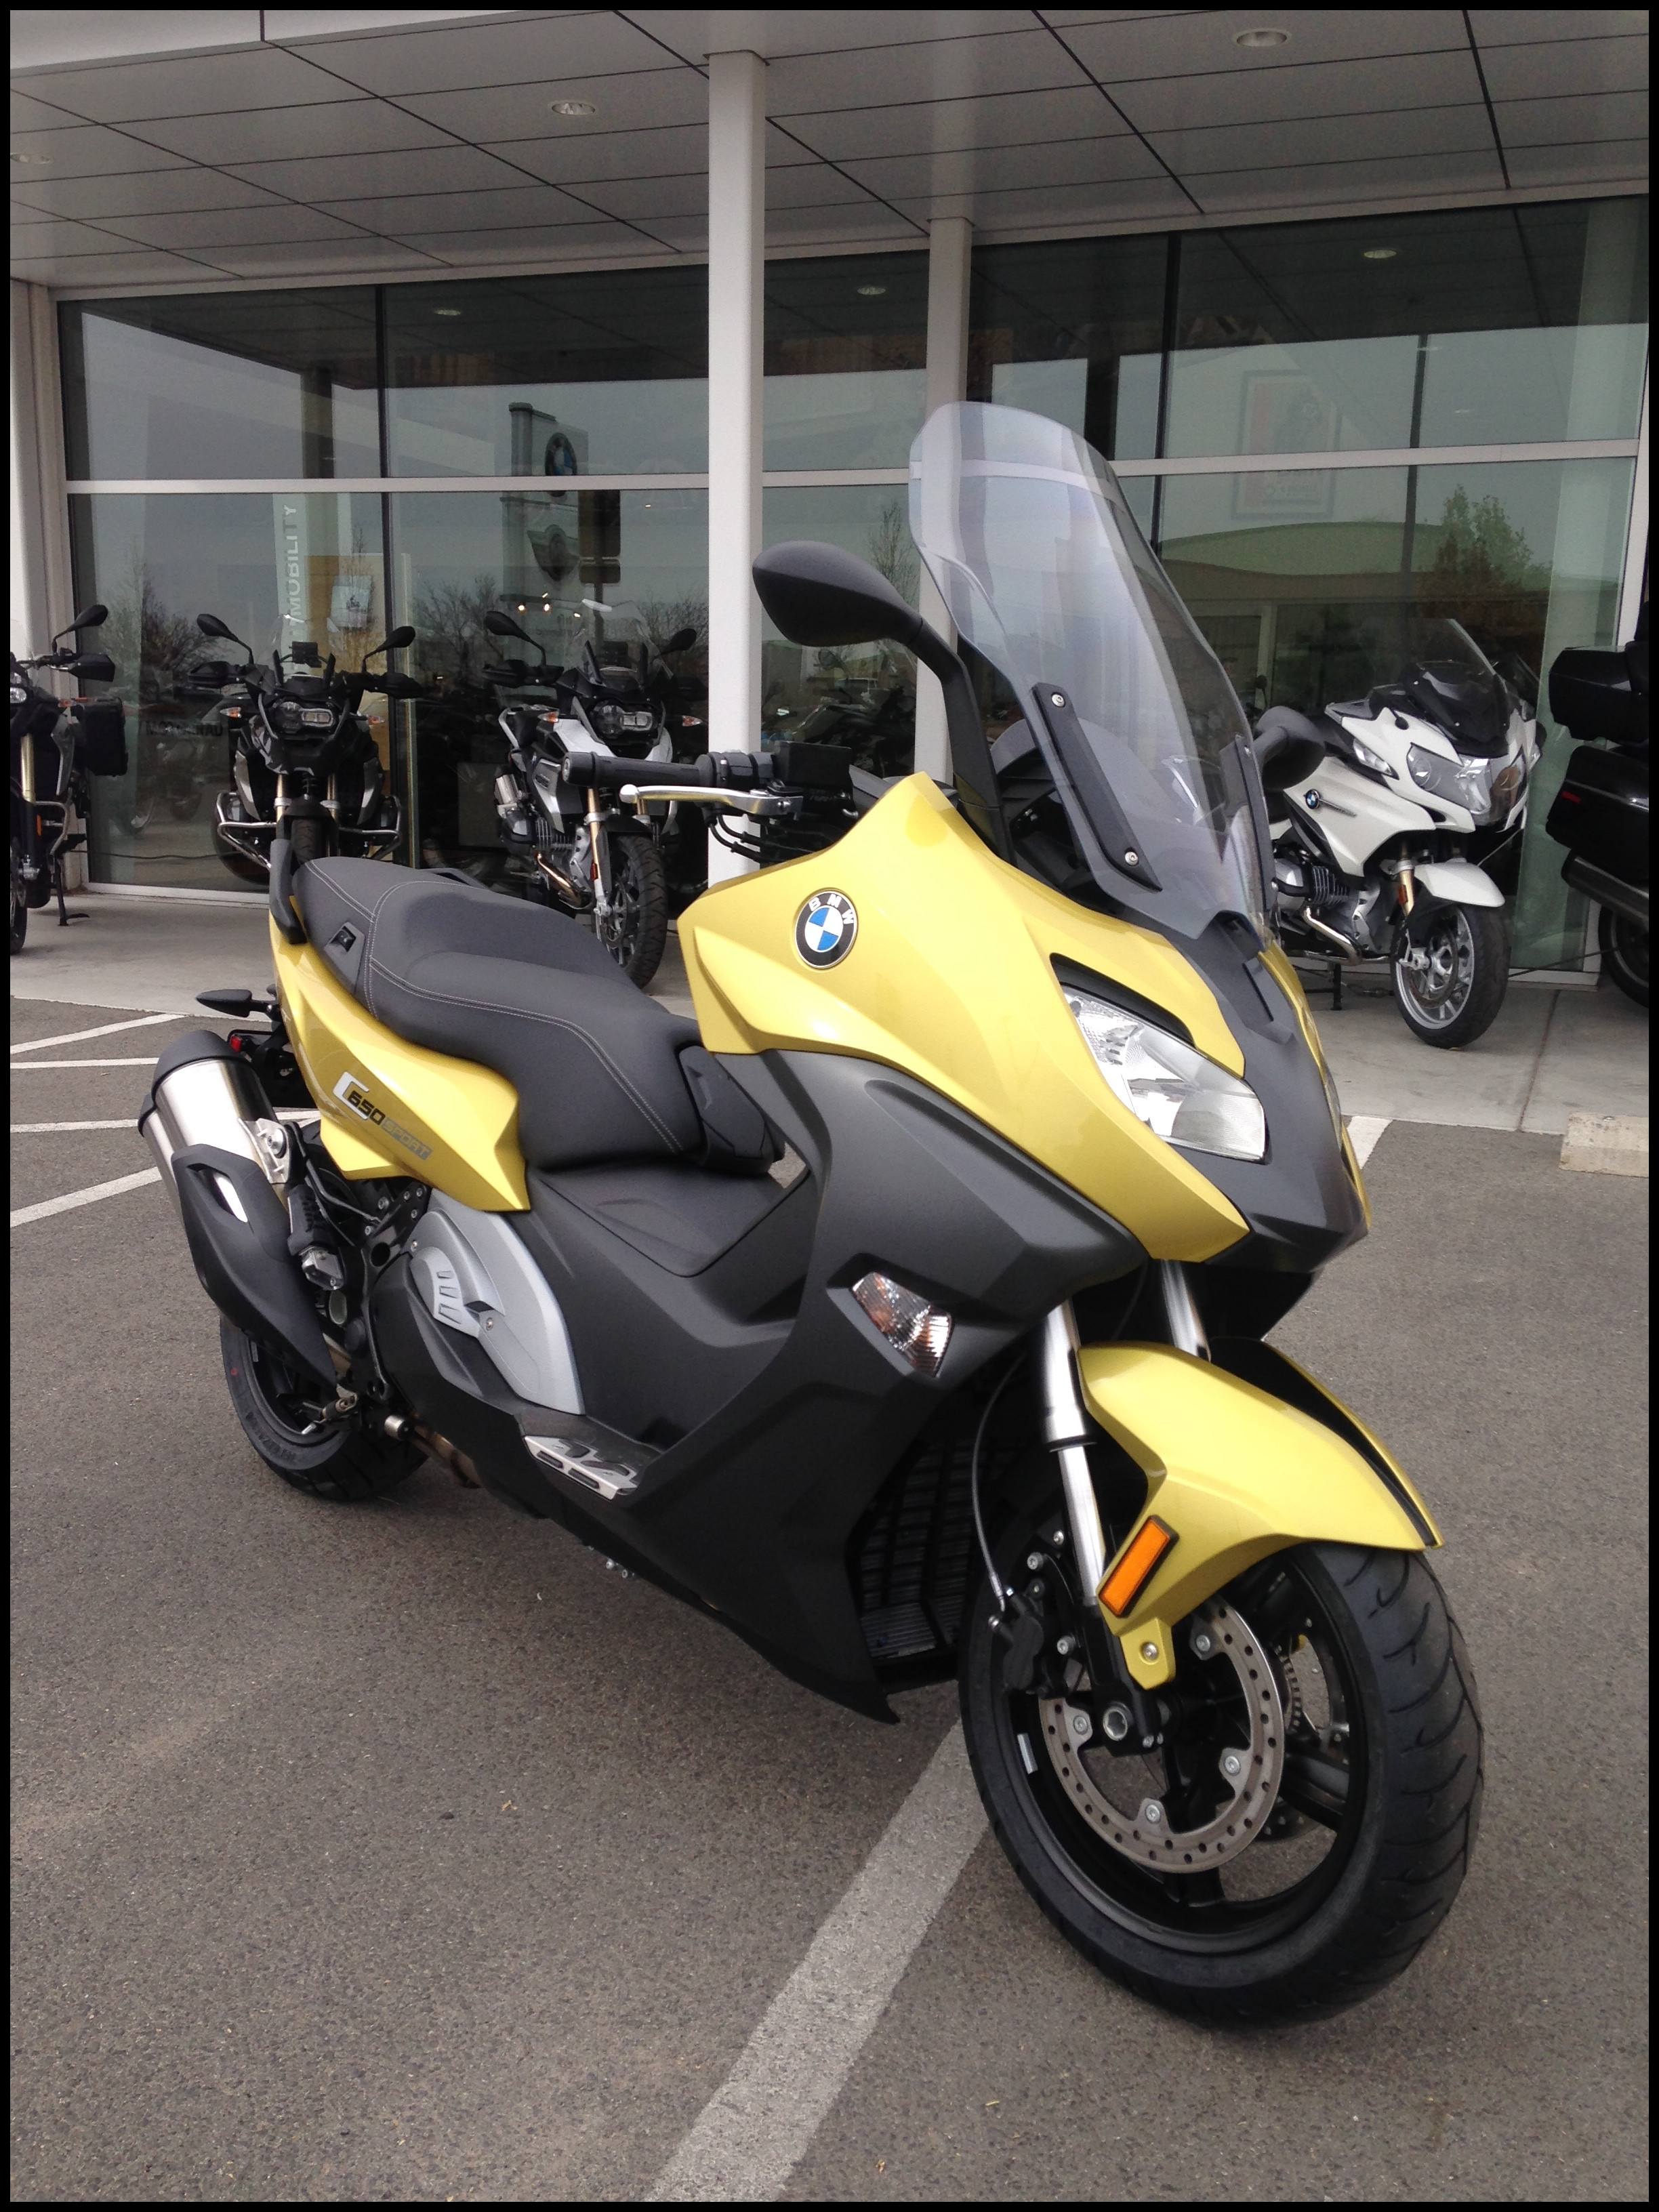 2018 Bmw Scooter 650 Lovely New Bmw Motorcycles Santa Fe Bmw Motorcycles